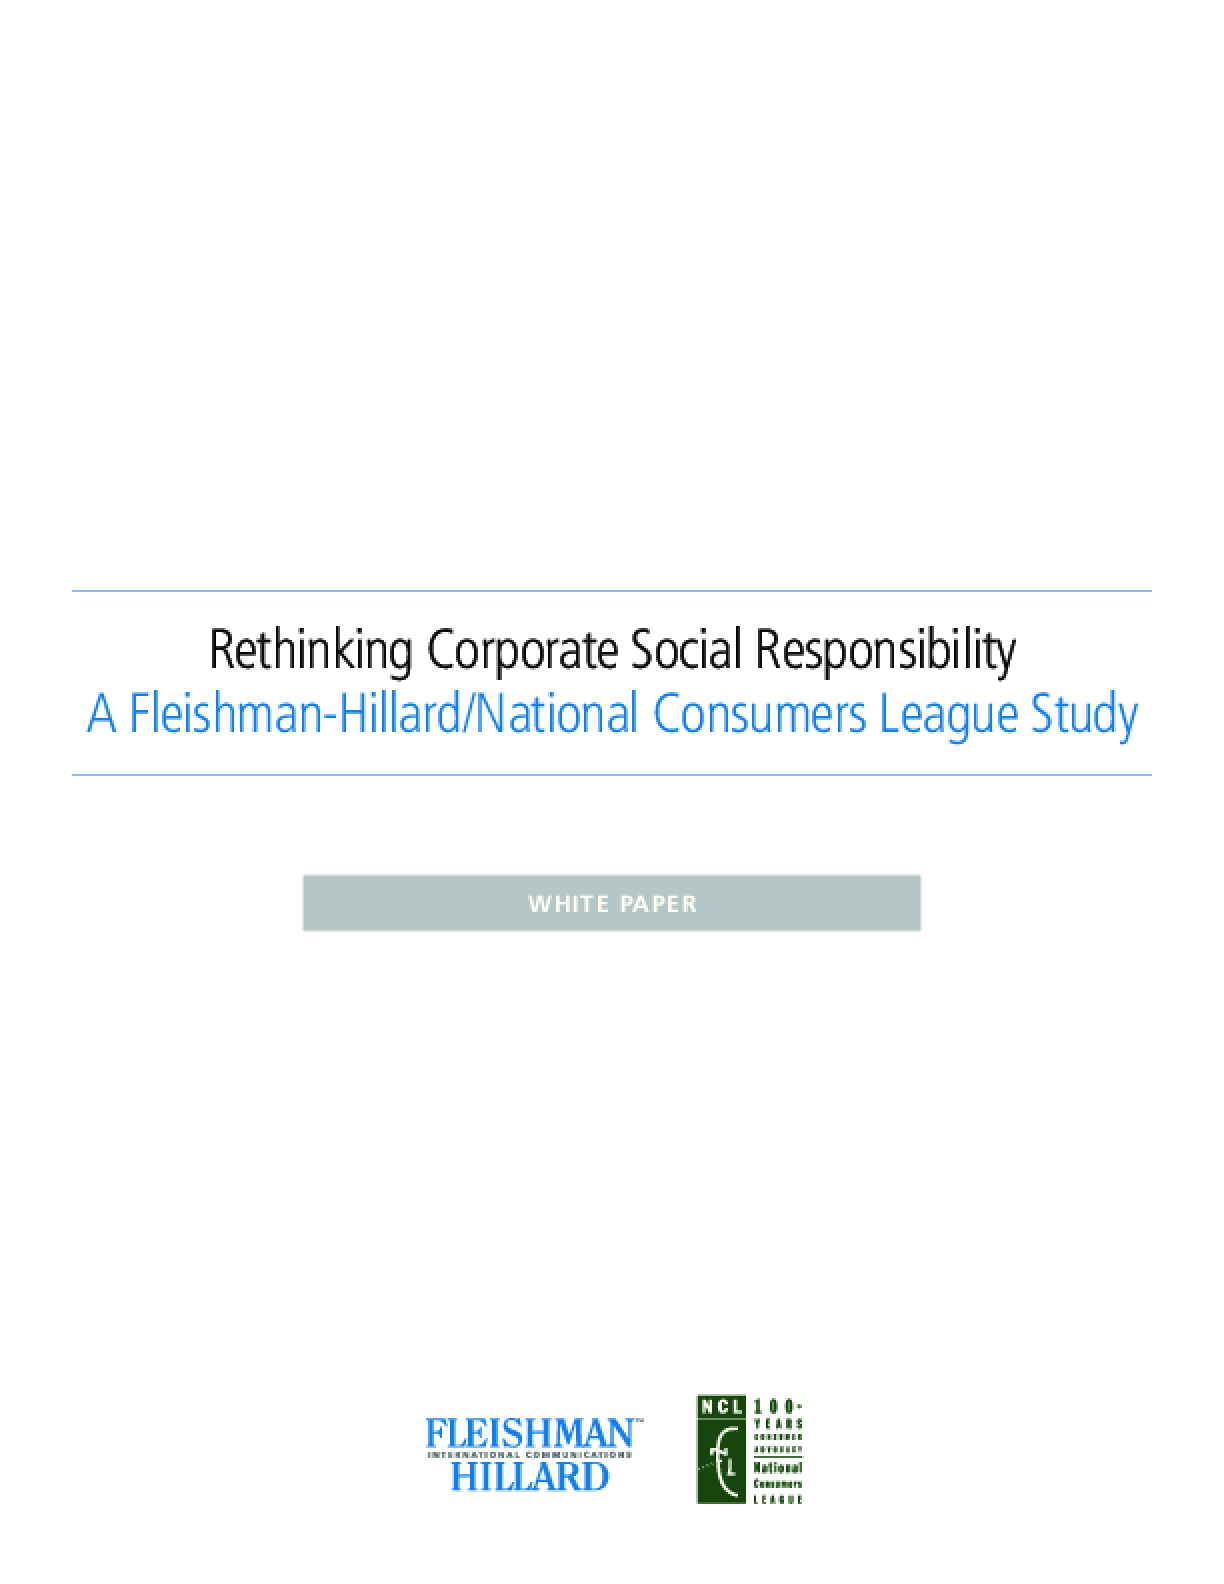 Rethinking Corporate social Responsibility: A Fleishman-Hillard/National Consumers League Study